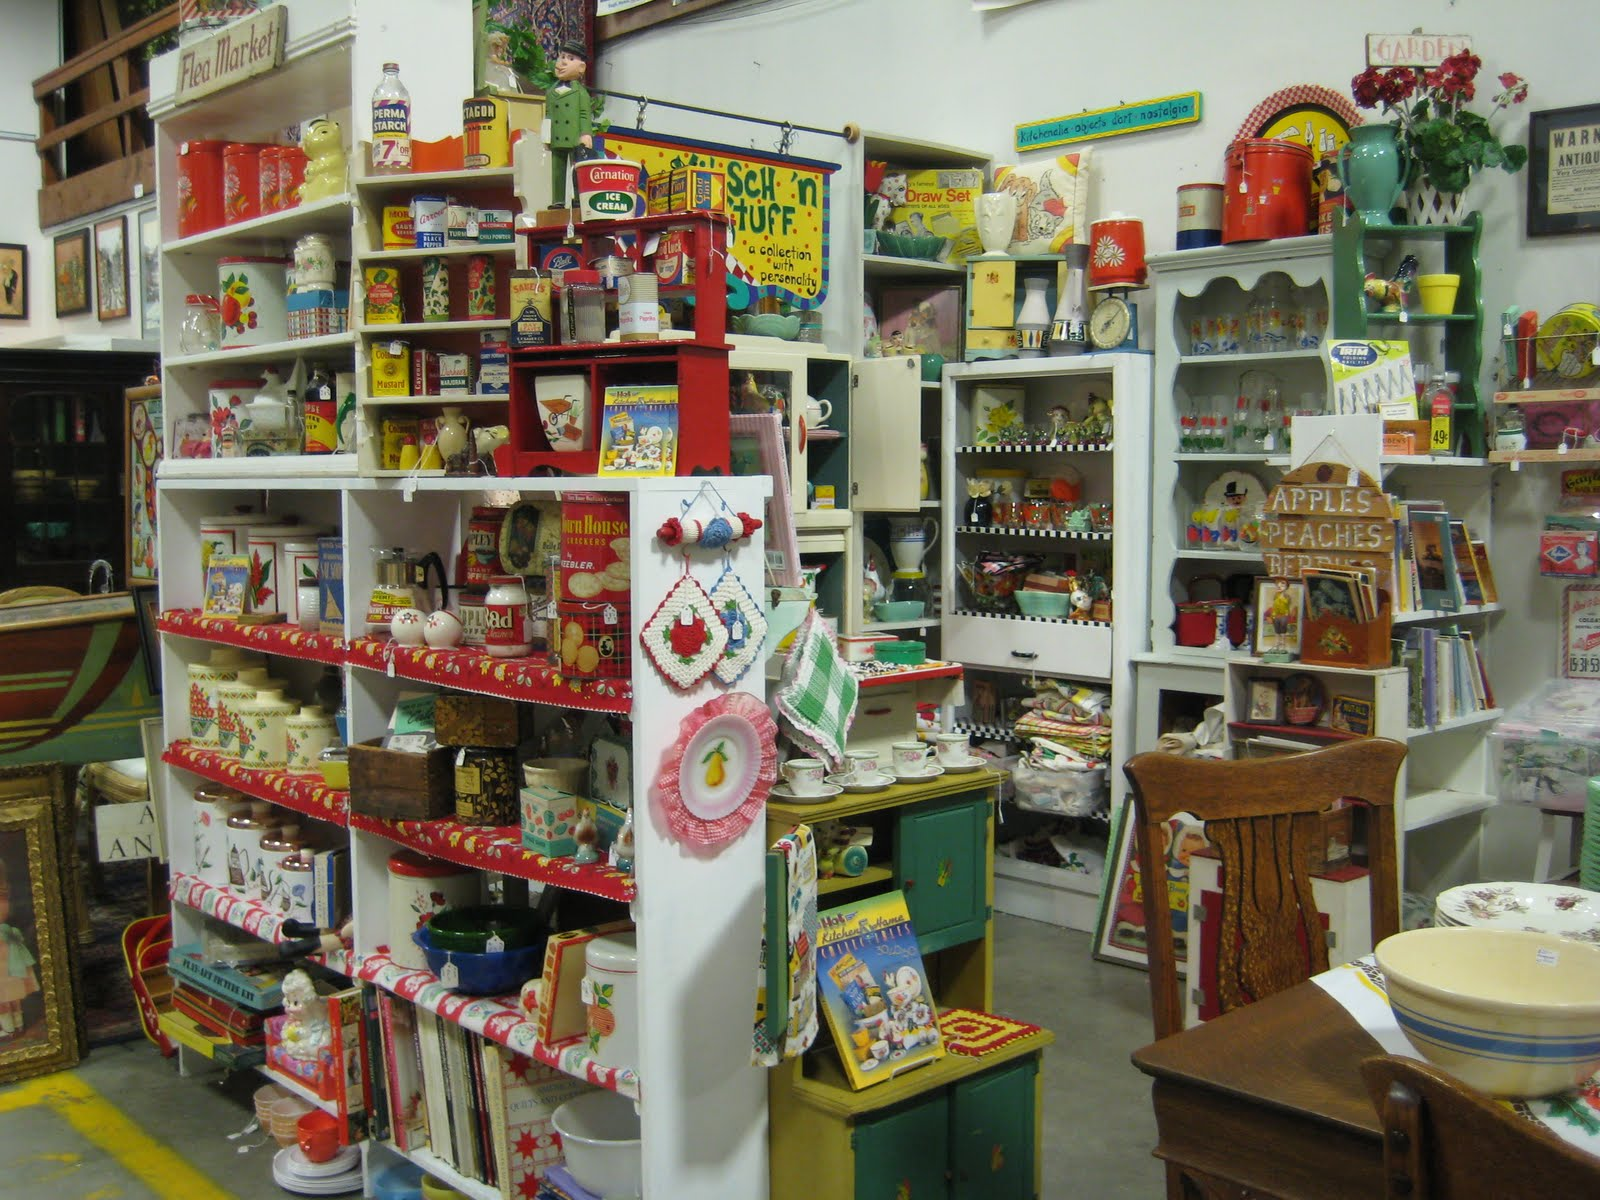 my shop kitsch n stuff at the collinsville antiques company of new hartford is loaded with retro pantry items from the s : kitchen items store